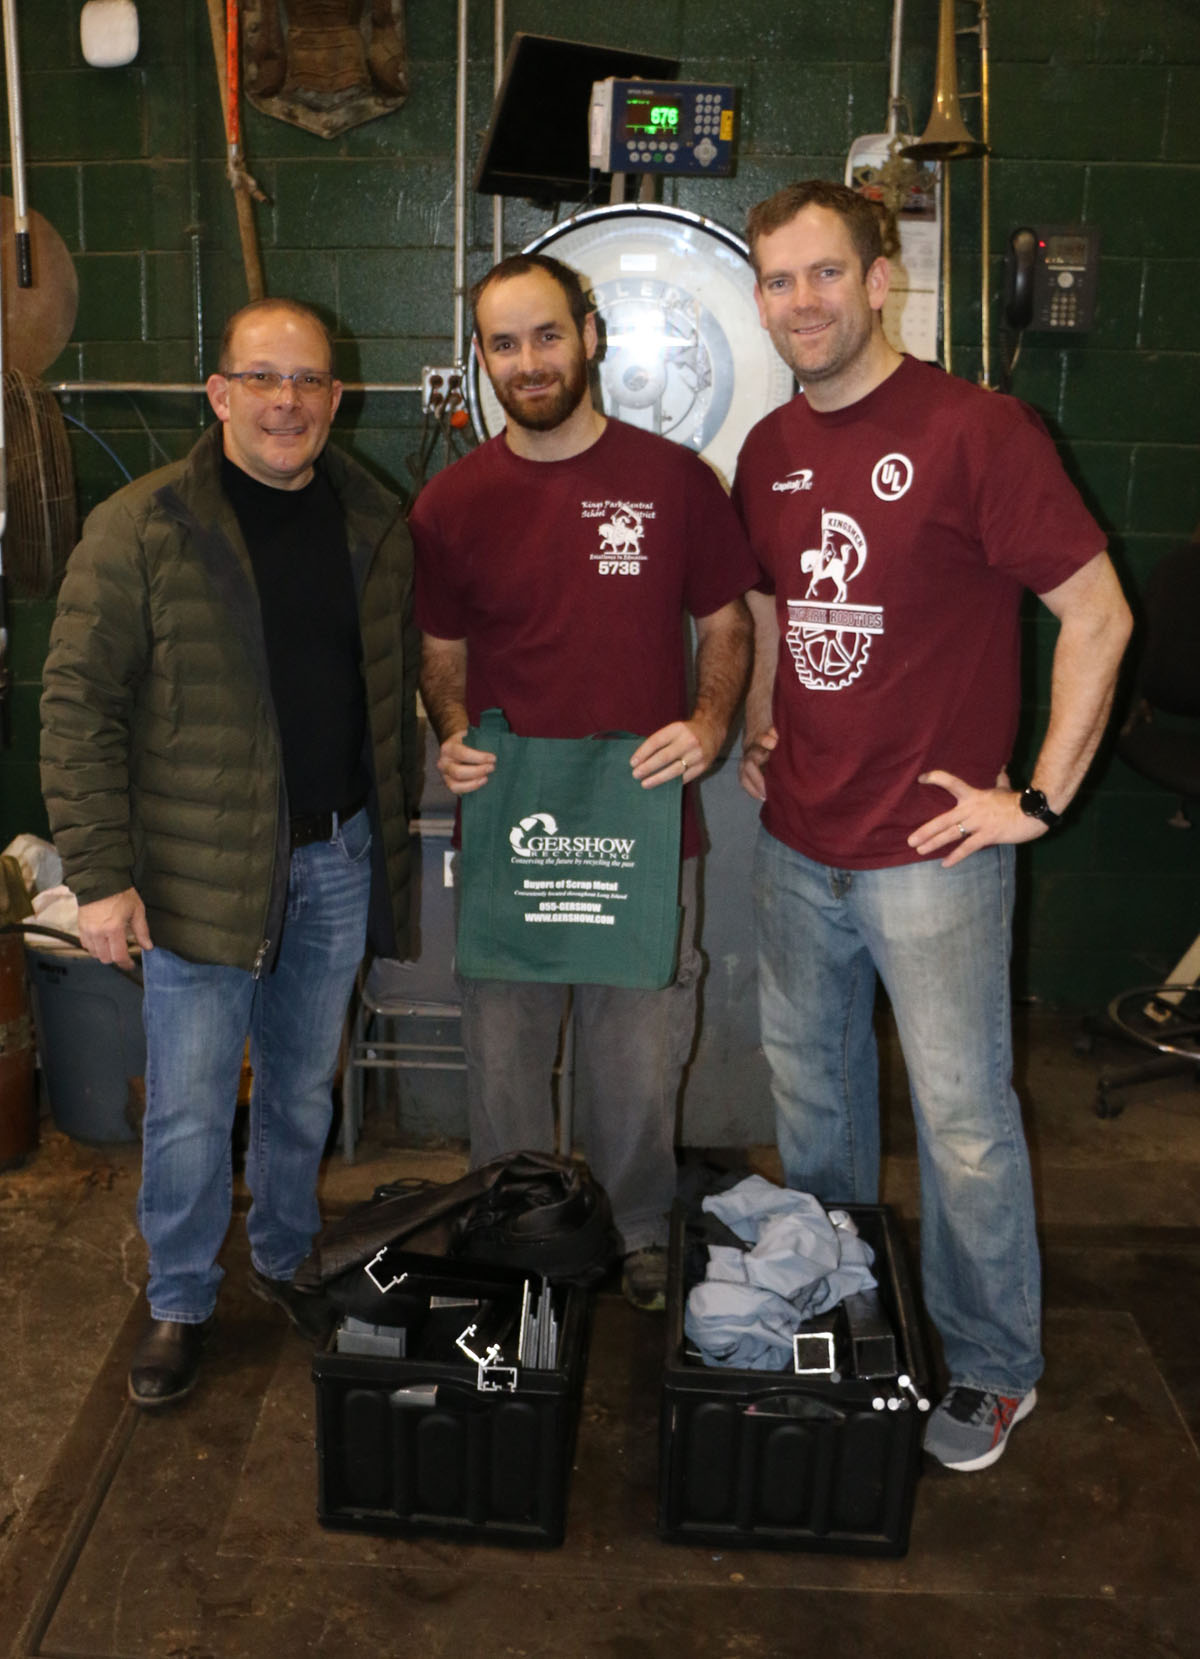 Pictured (left to right): Gershow Manager Jonathan Abrams, Kings Park High School Robotics Team Coach Kevin Hutchins and Assistant Coach Sam Kruse.